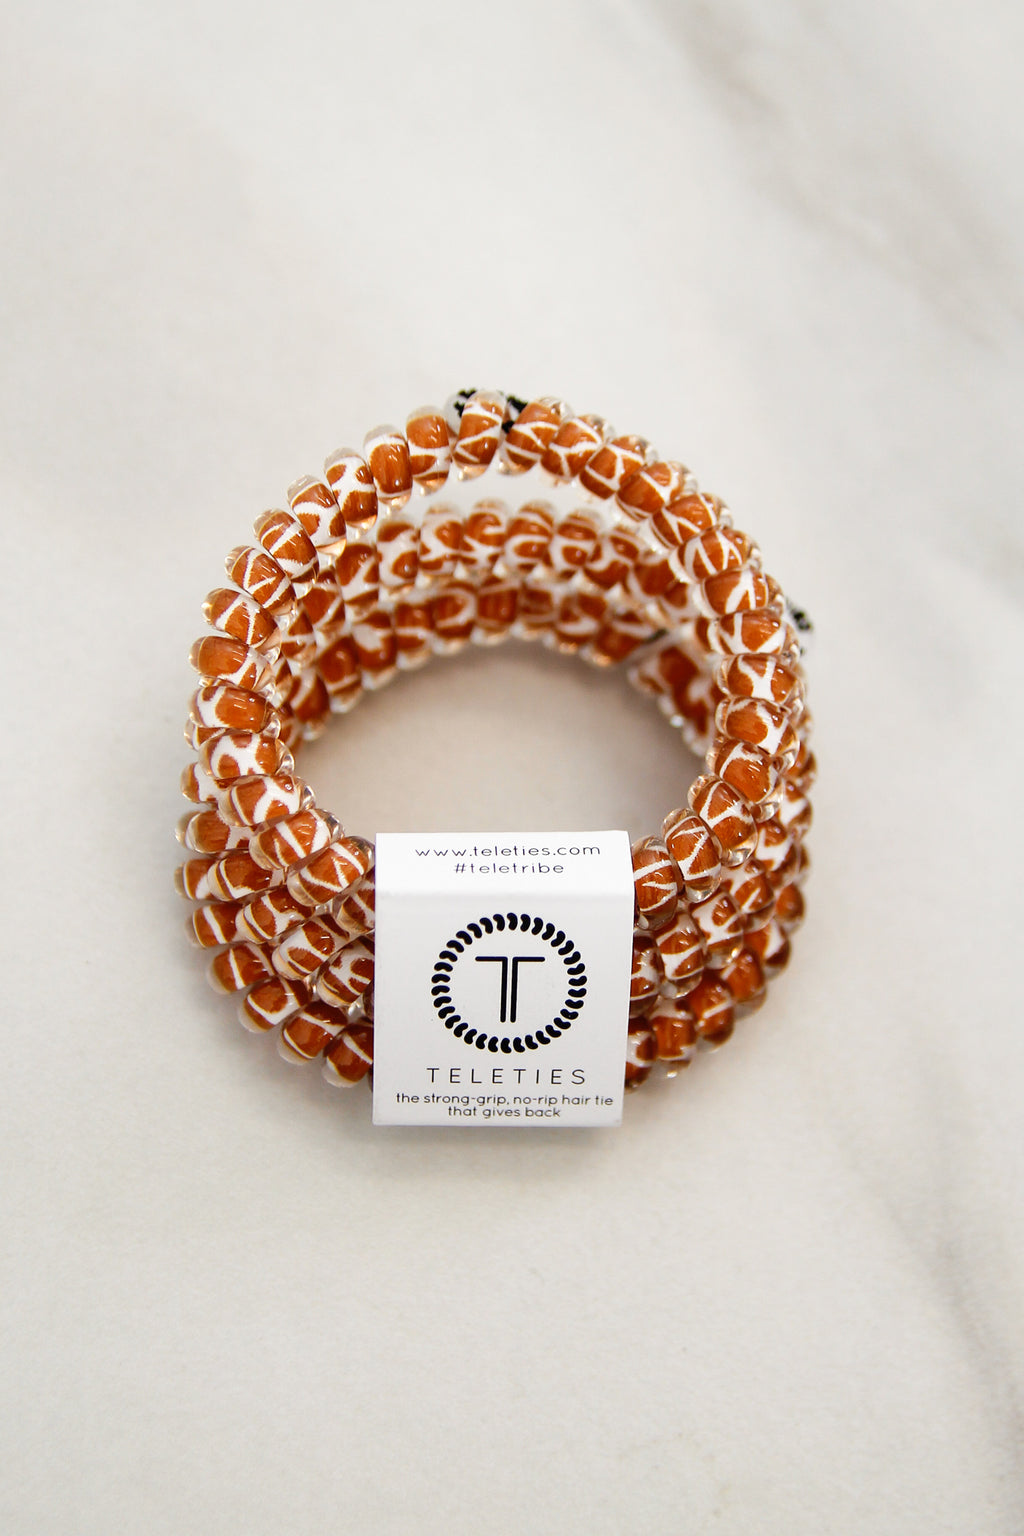 Teleties Small Hair Ties - Giraffe